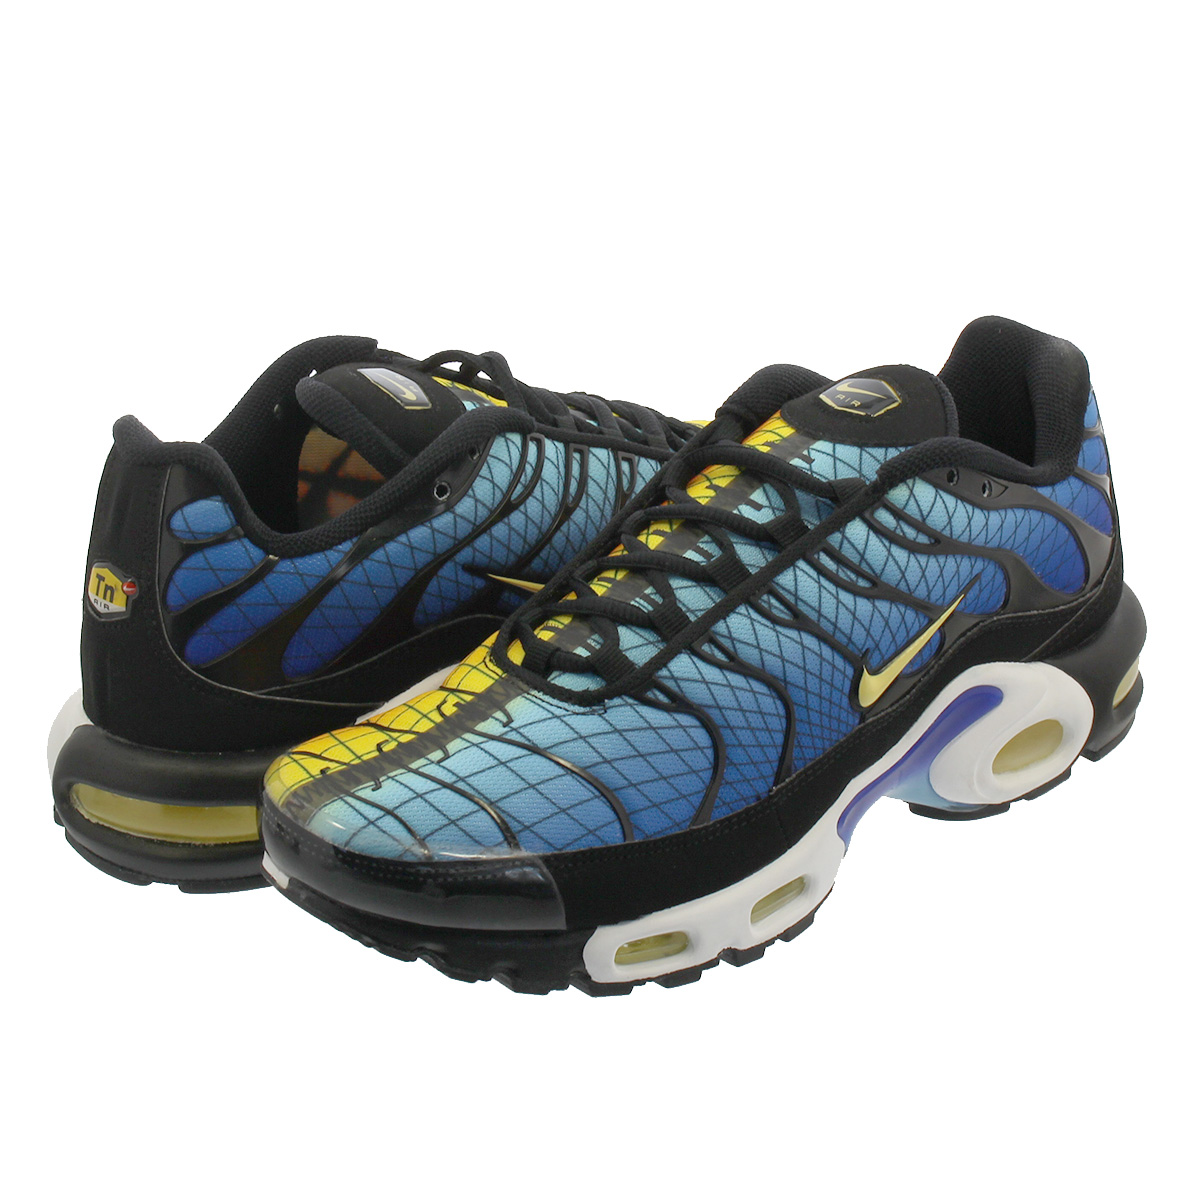 7e56453881 SELECT SHOP LOWTEX: NIKE AIR MAX PLUS TN SE Kie Ney AMAX plus TN SE ...